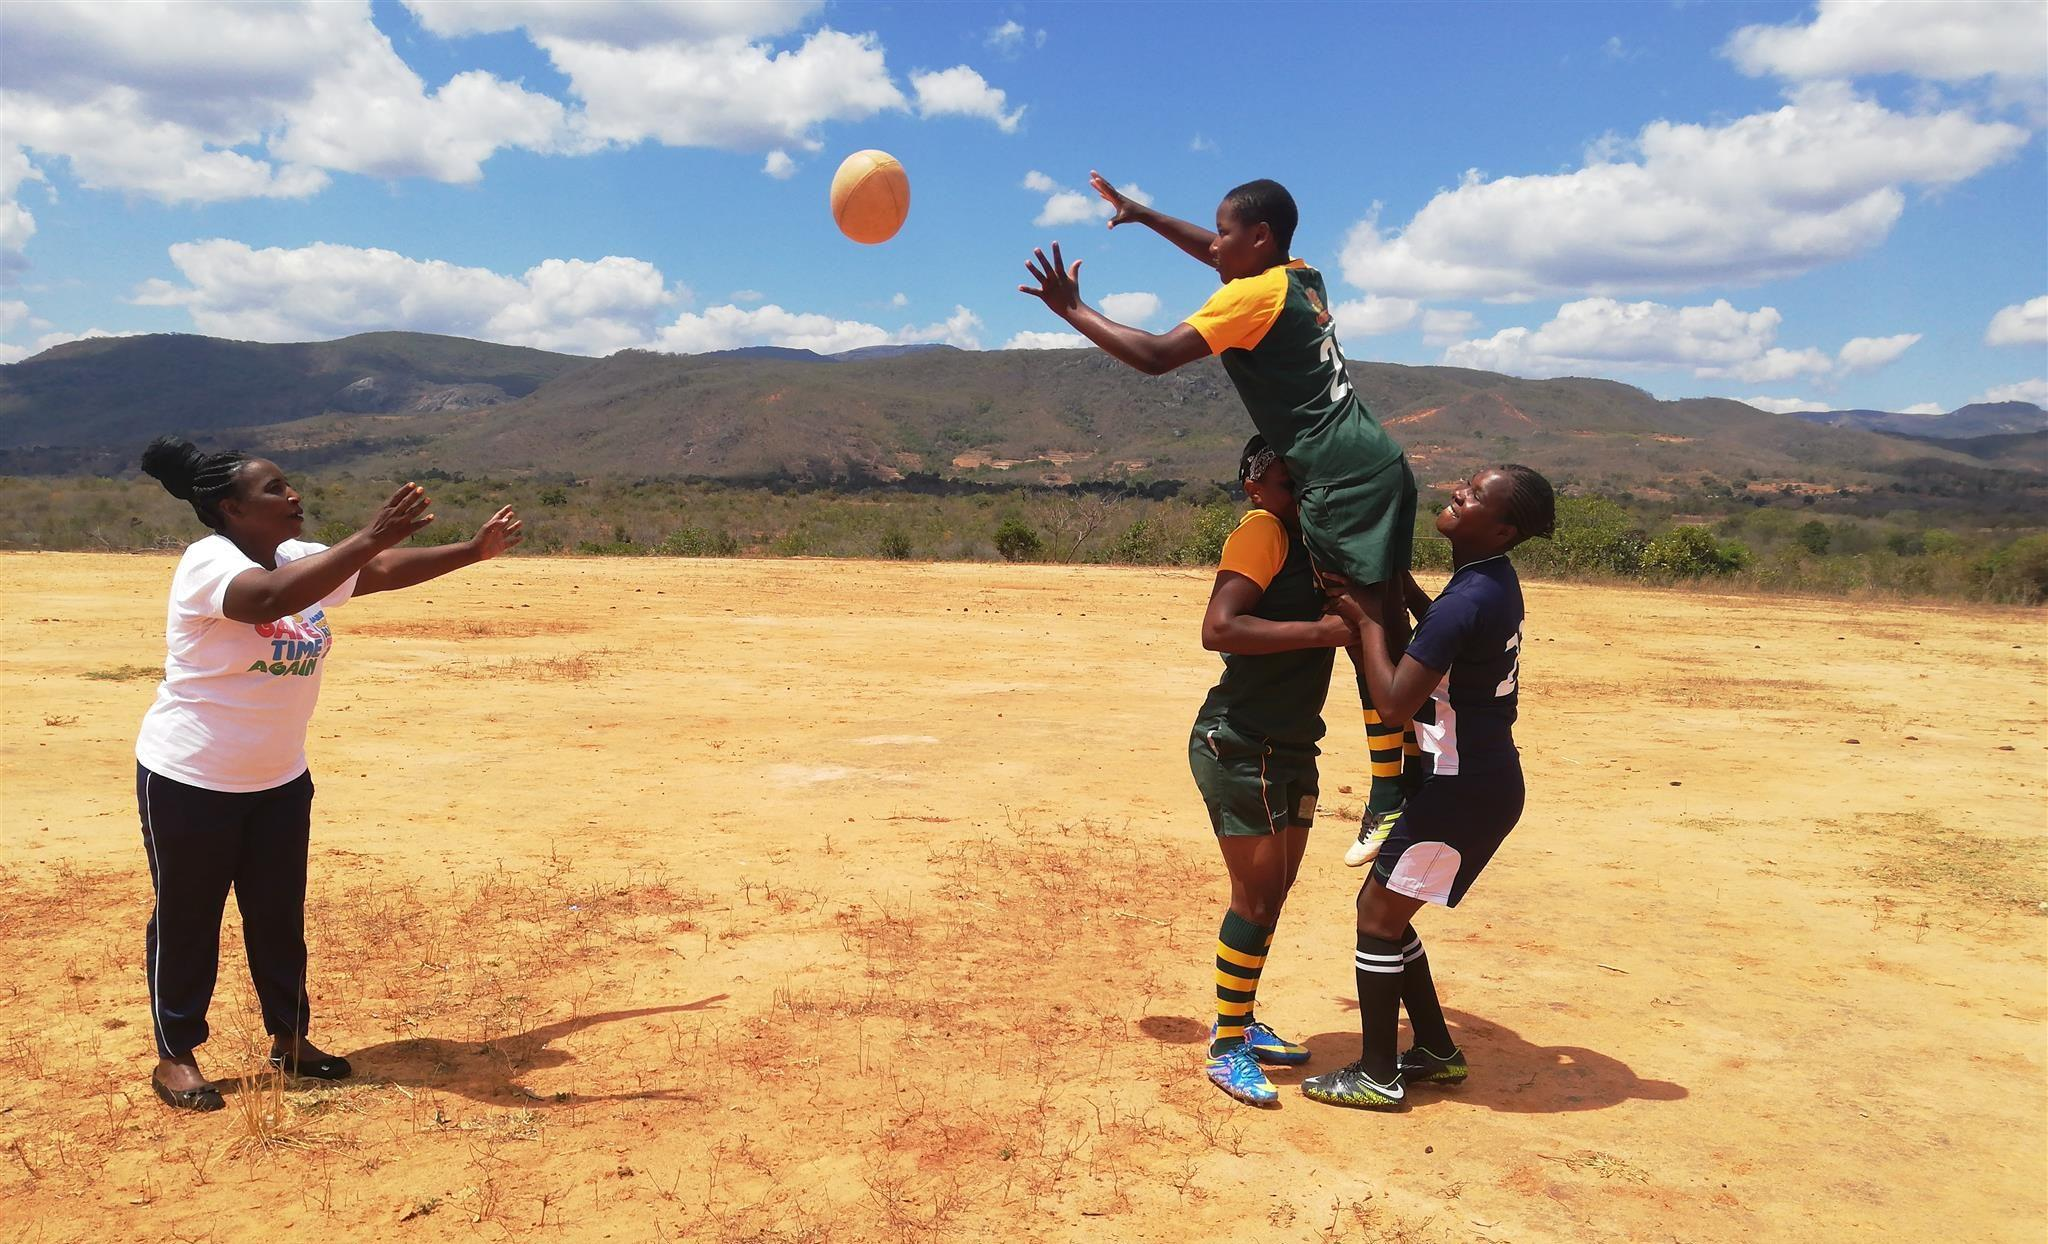 Rugby saves school girls from child marriage in rural Zimbabwe